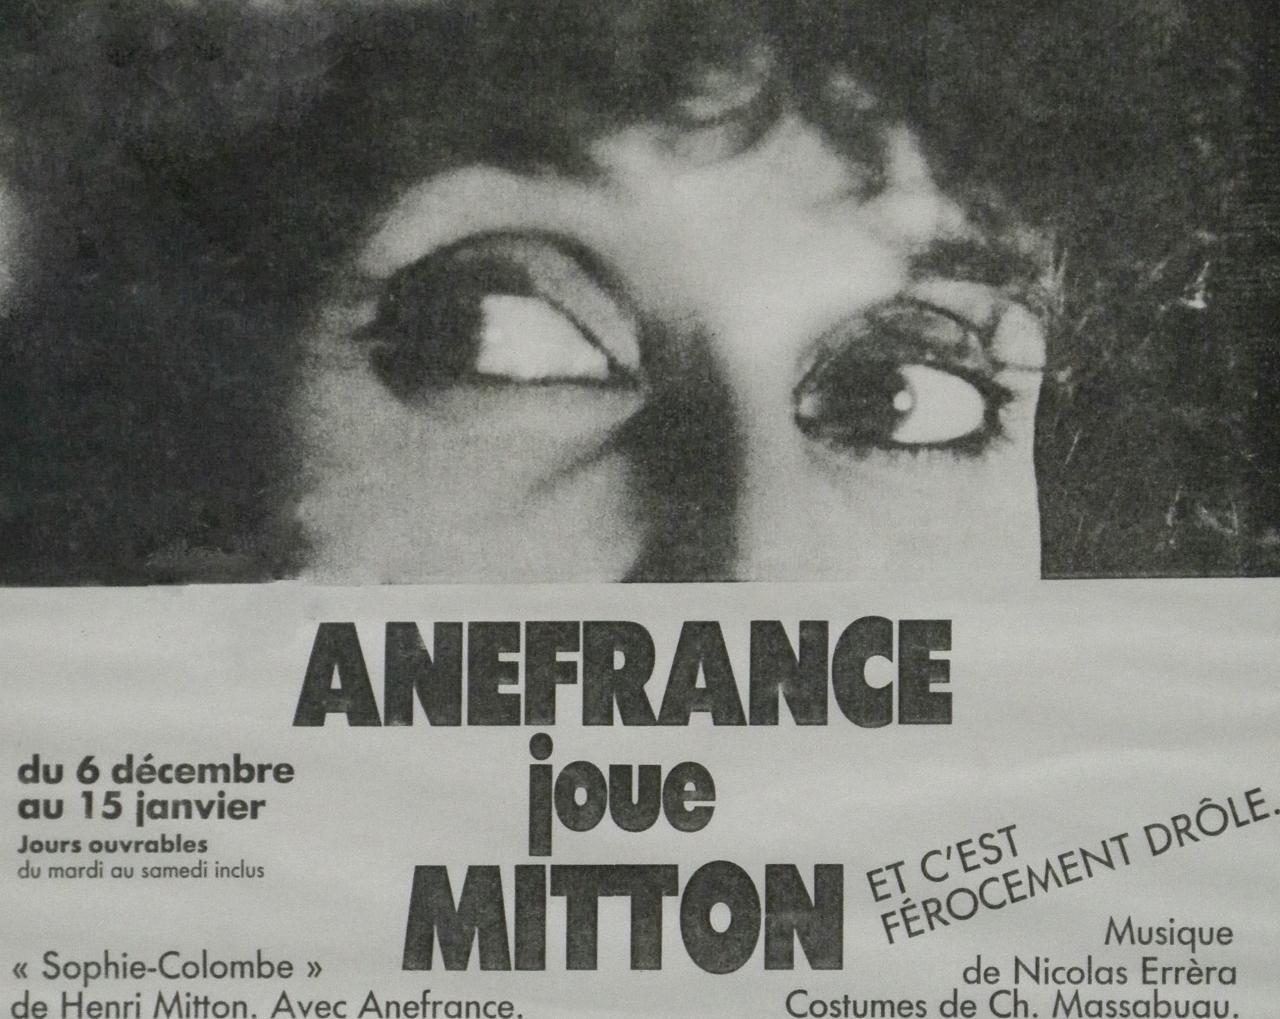 Affiche : Anefrance joue Mitton